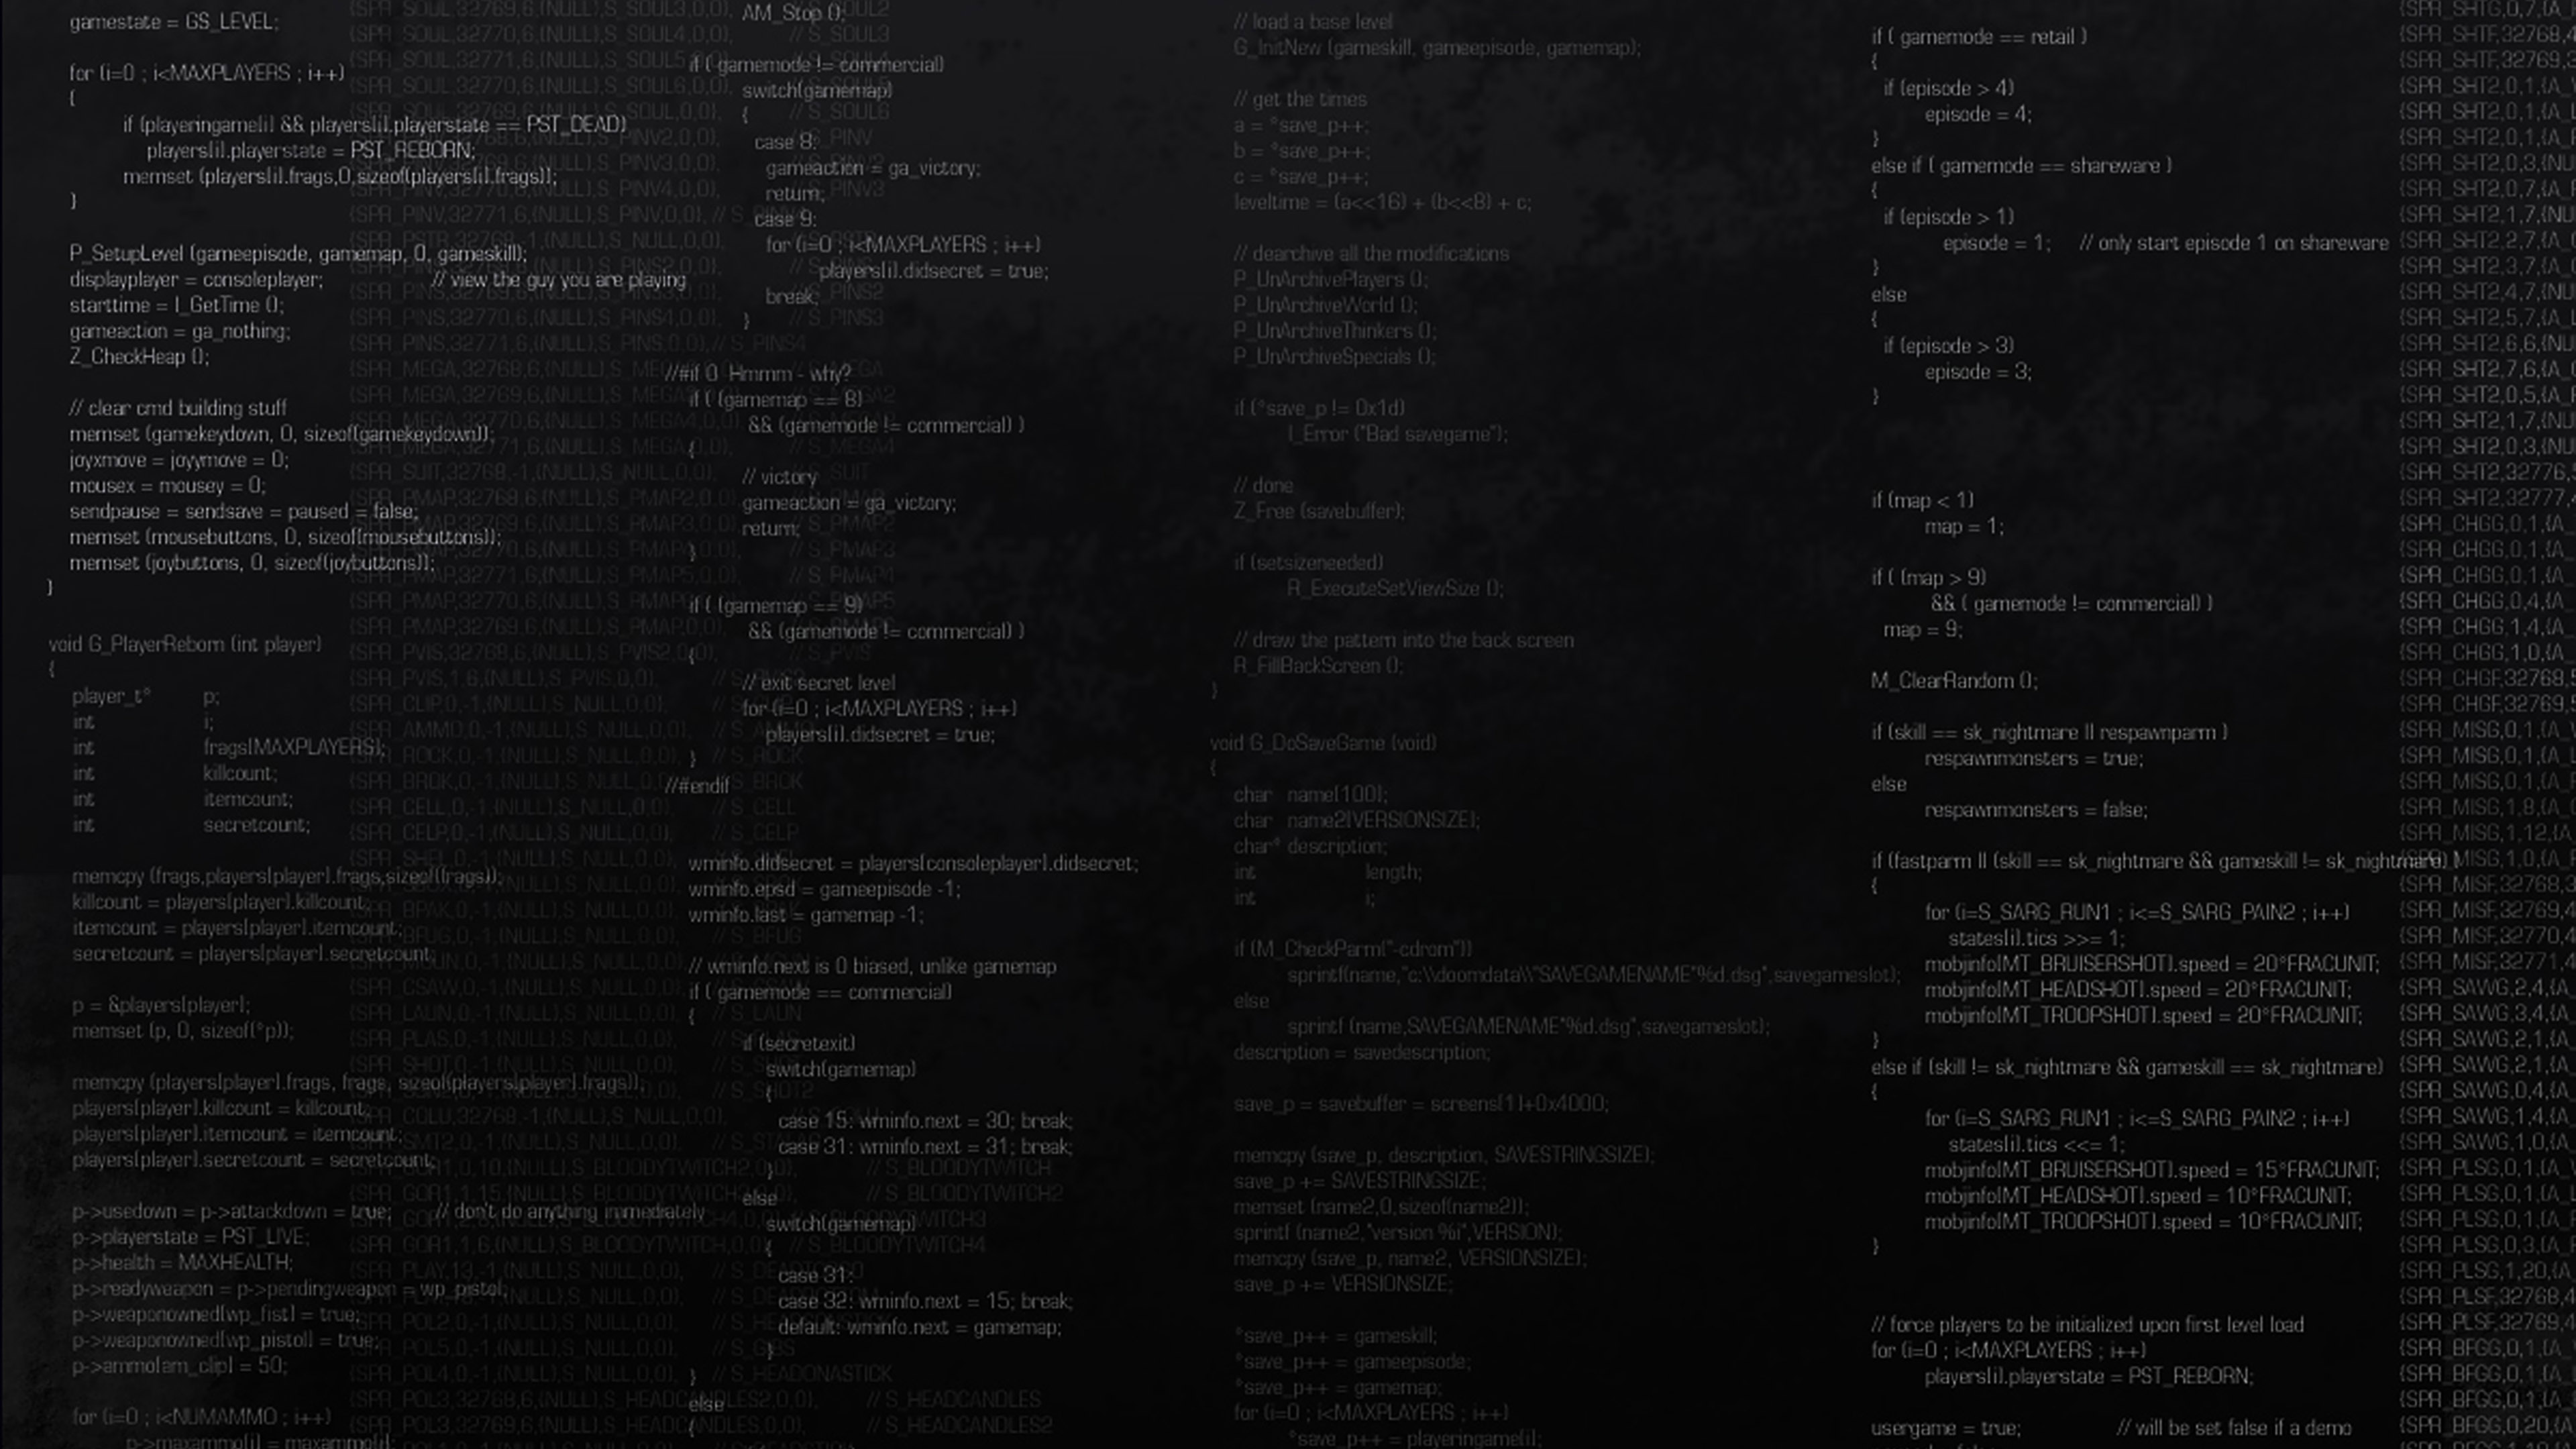 Free Fall Wallpaper For Computer Vb35 Wallpaper Programmer Coding Pattern Papers Co